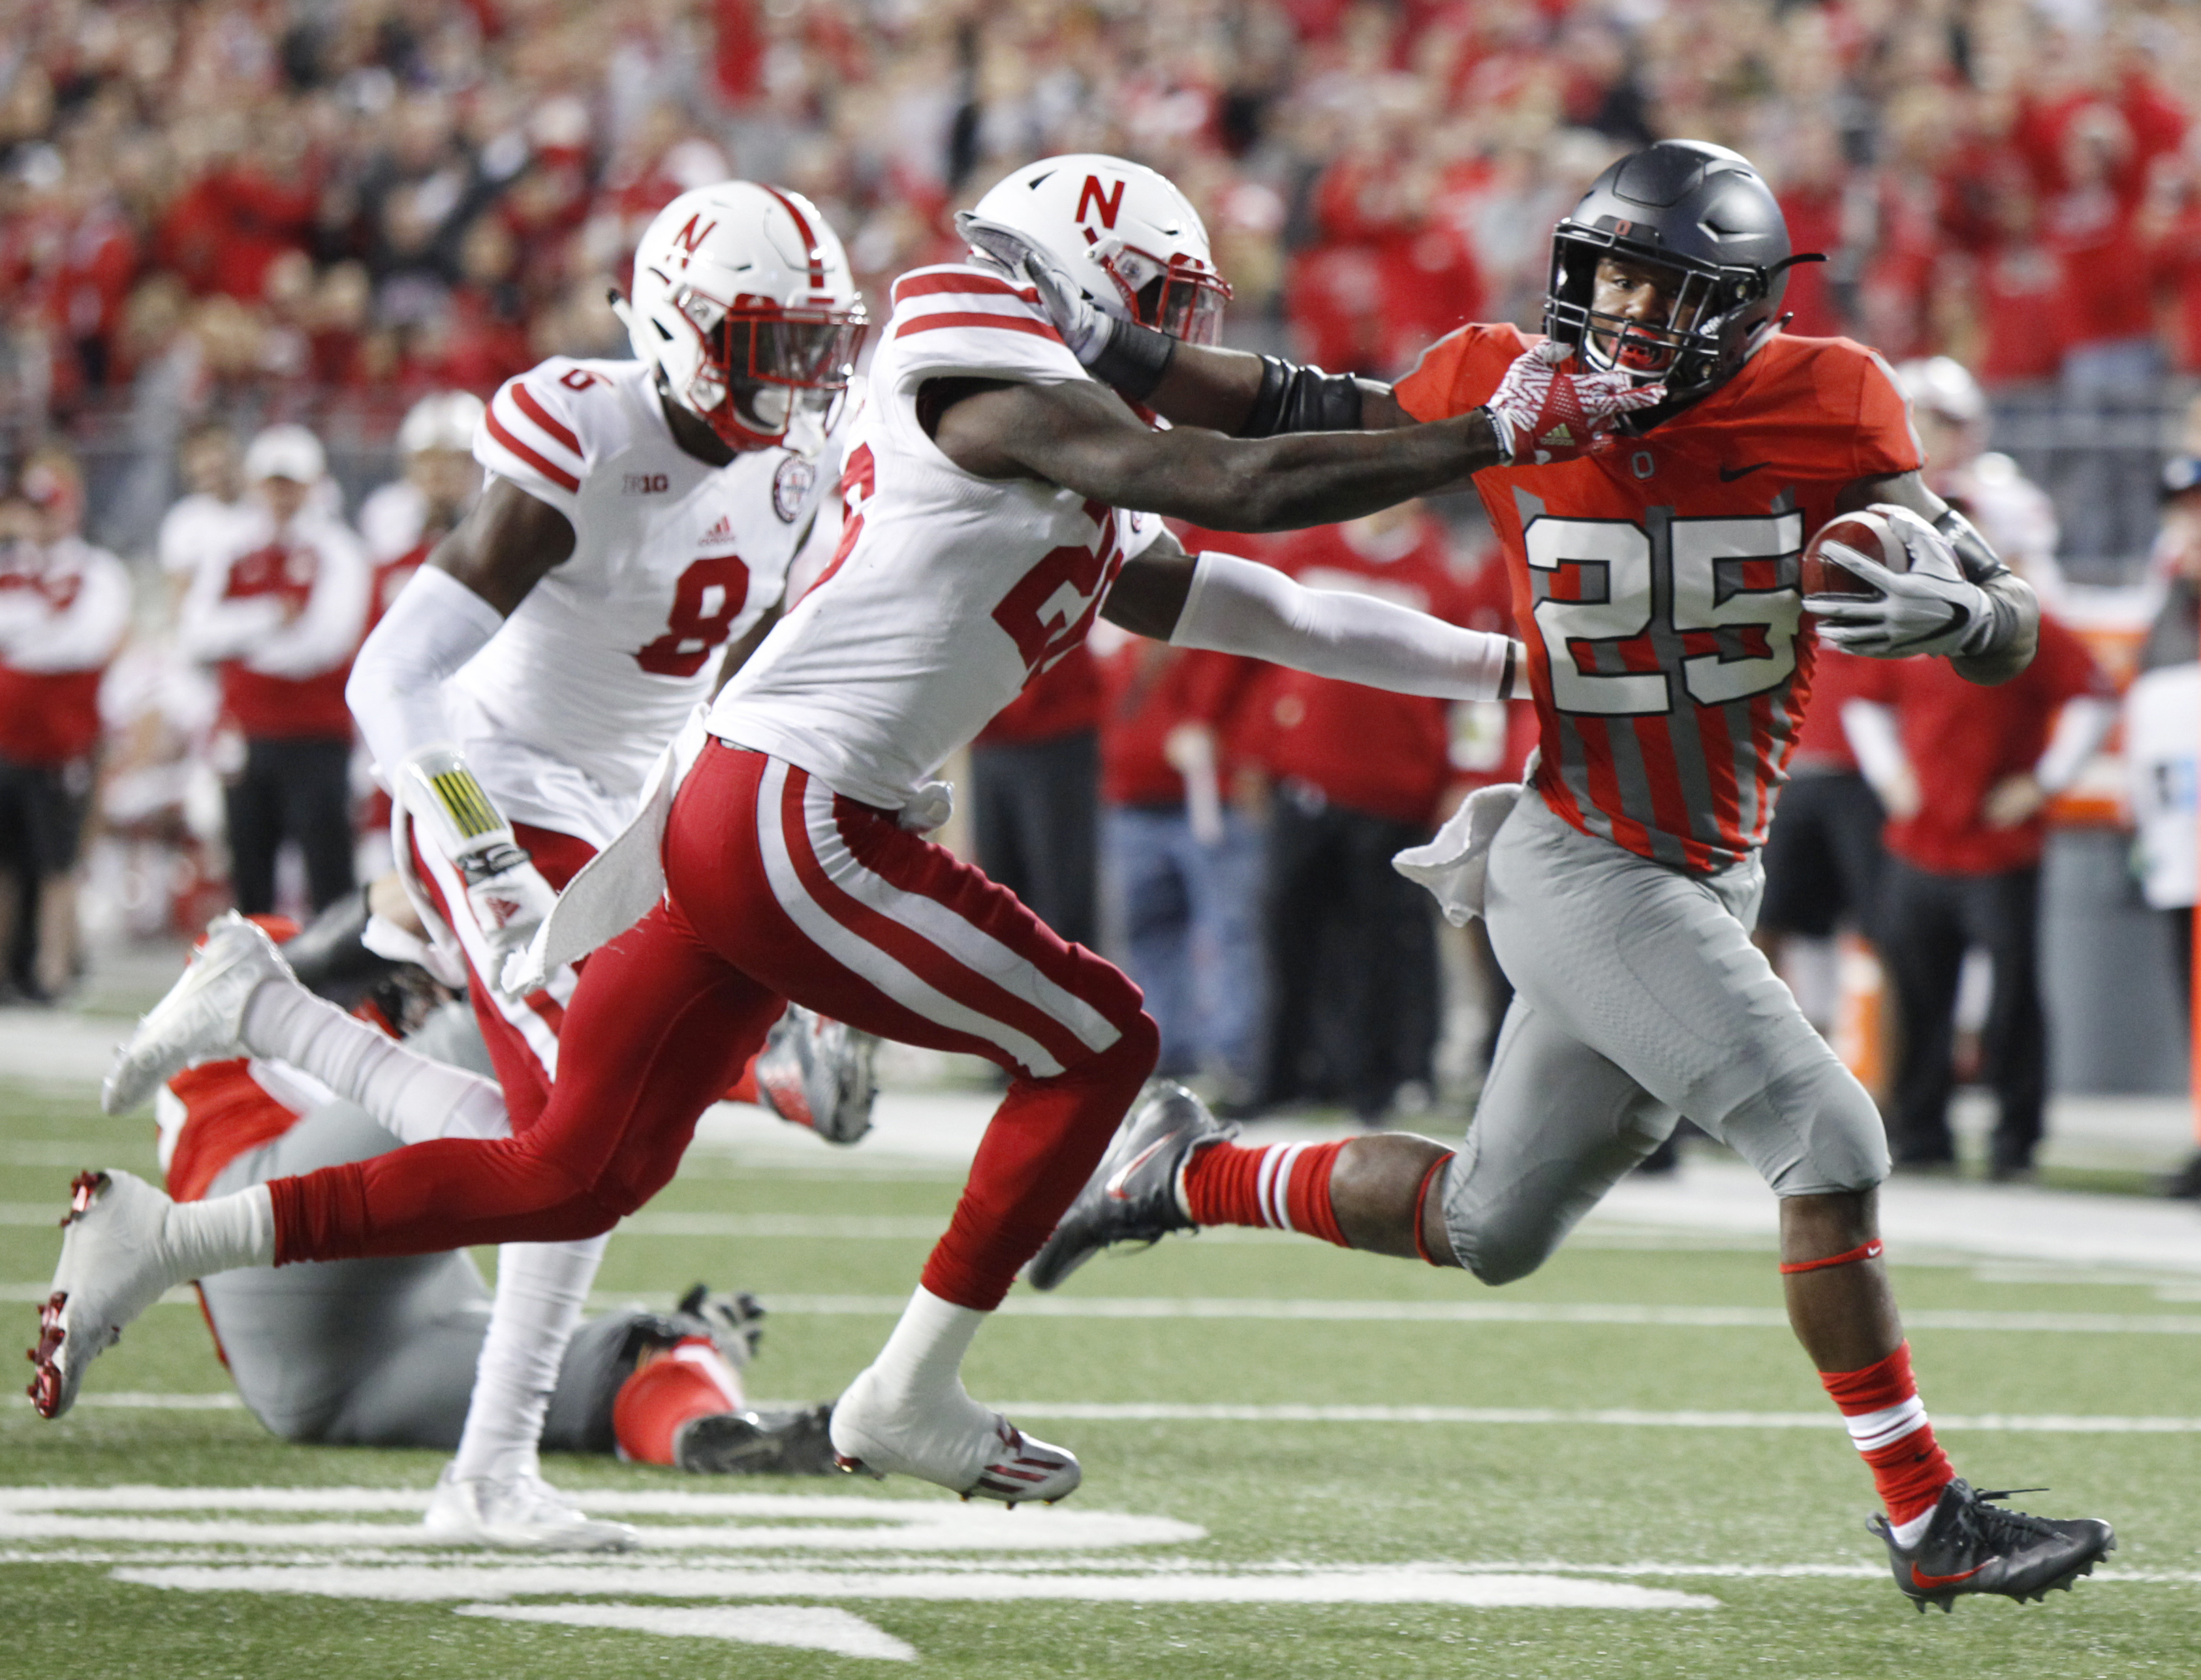 Ohio State running back Mike Weber, right, stiff-arms Nebraska linebacker Thomas Connely on his way to scoring a touchdown during the first half of an NCAA college football game Saturday, Nov. 5, 2016, in Columbus, Ohio. (AP Photo/Paul Vernon)